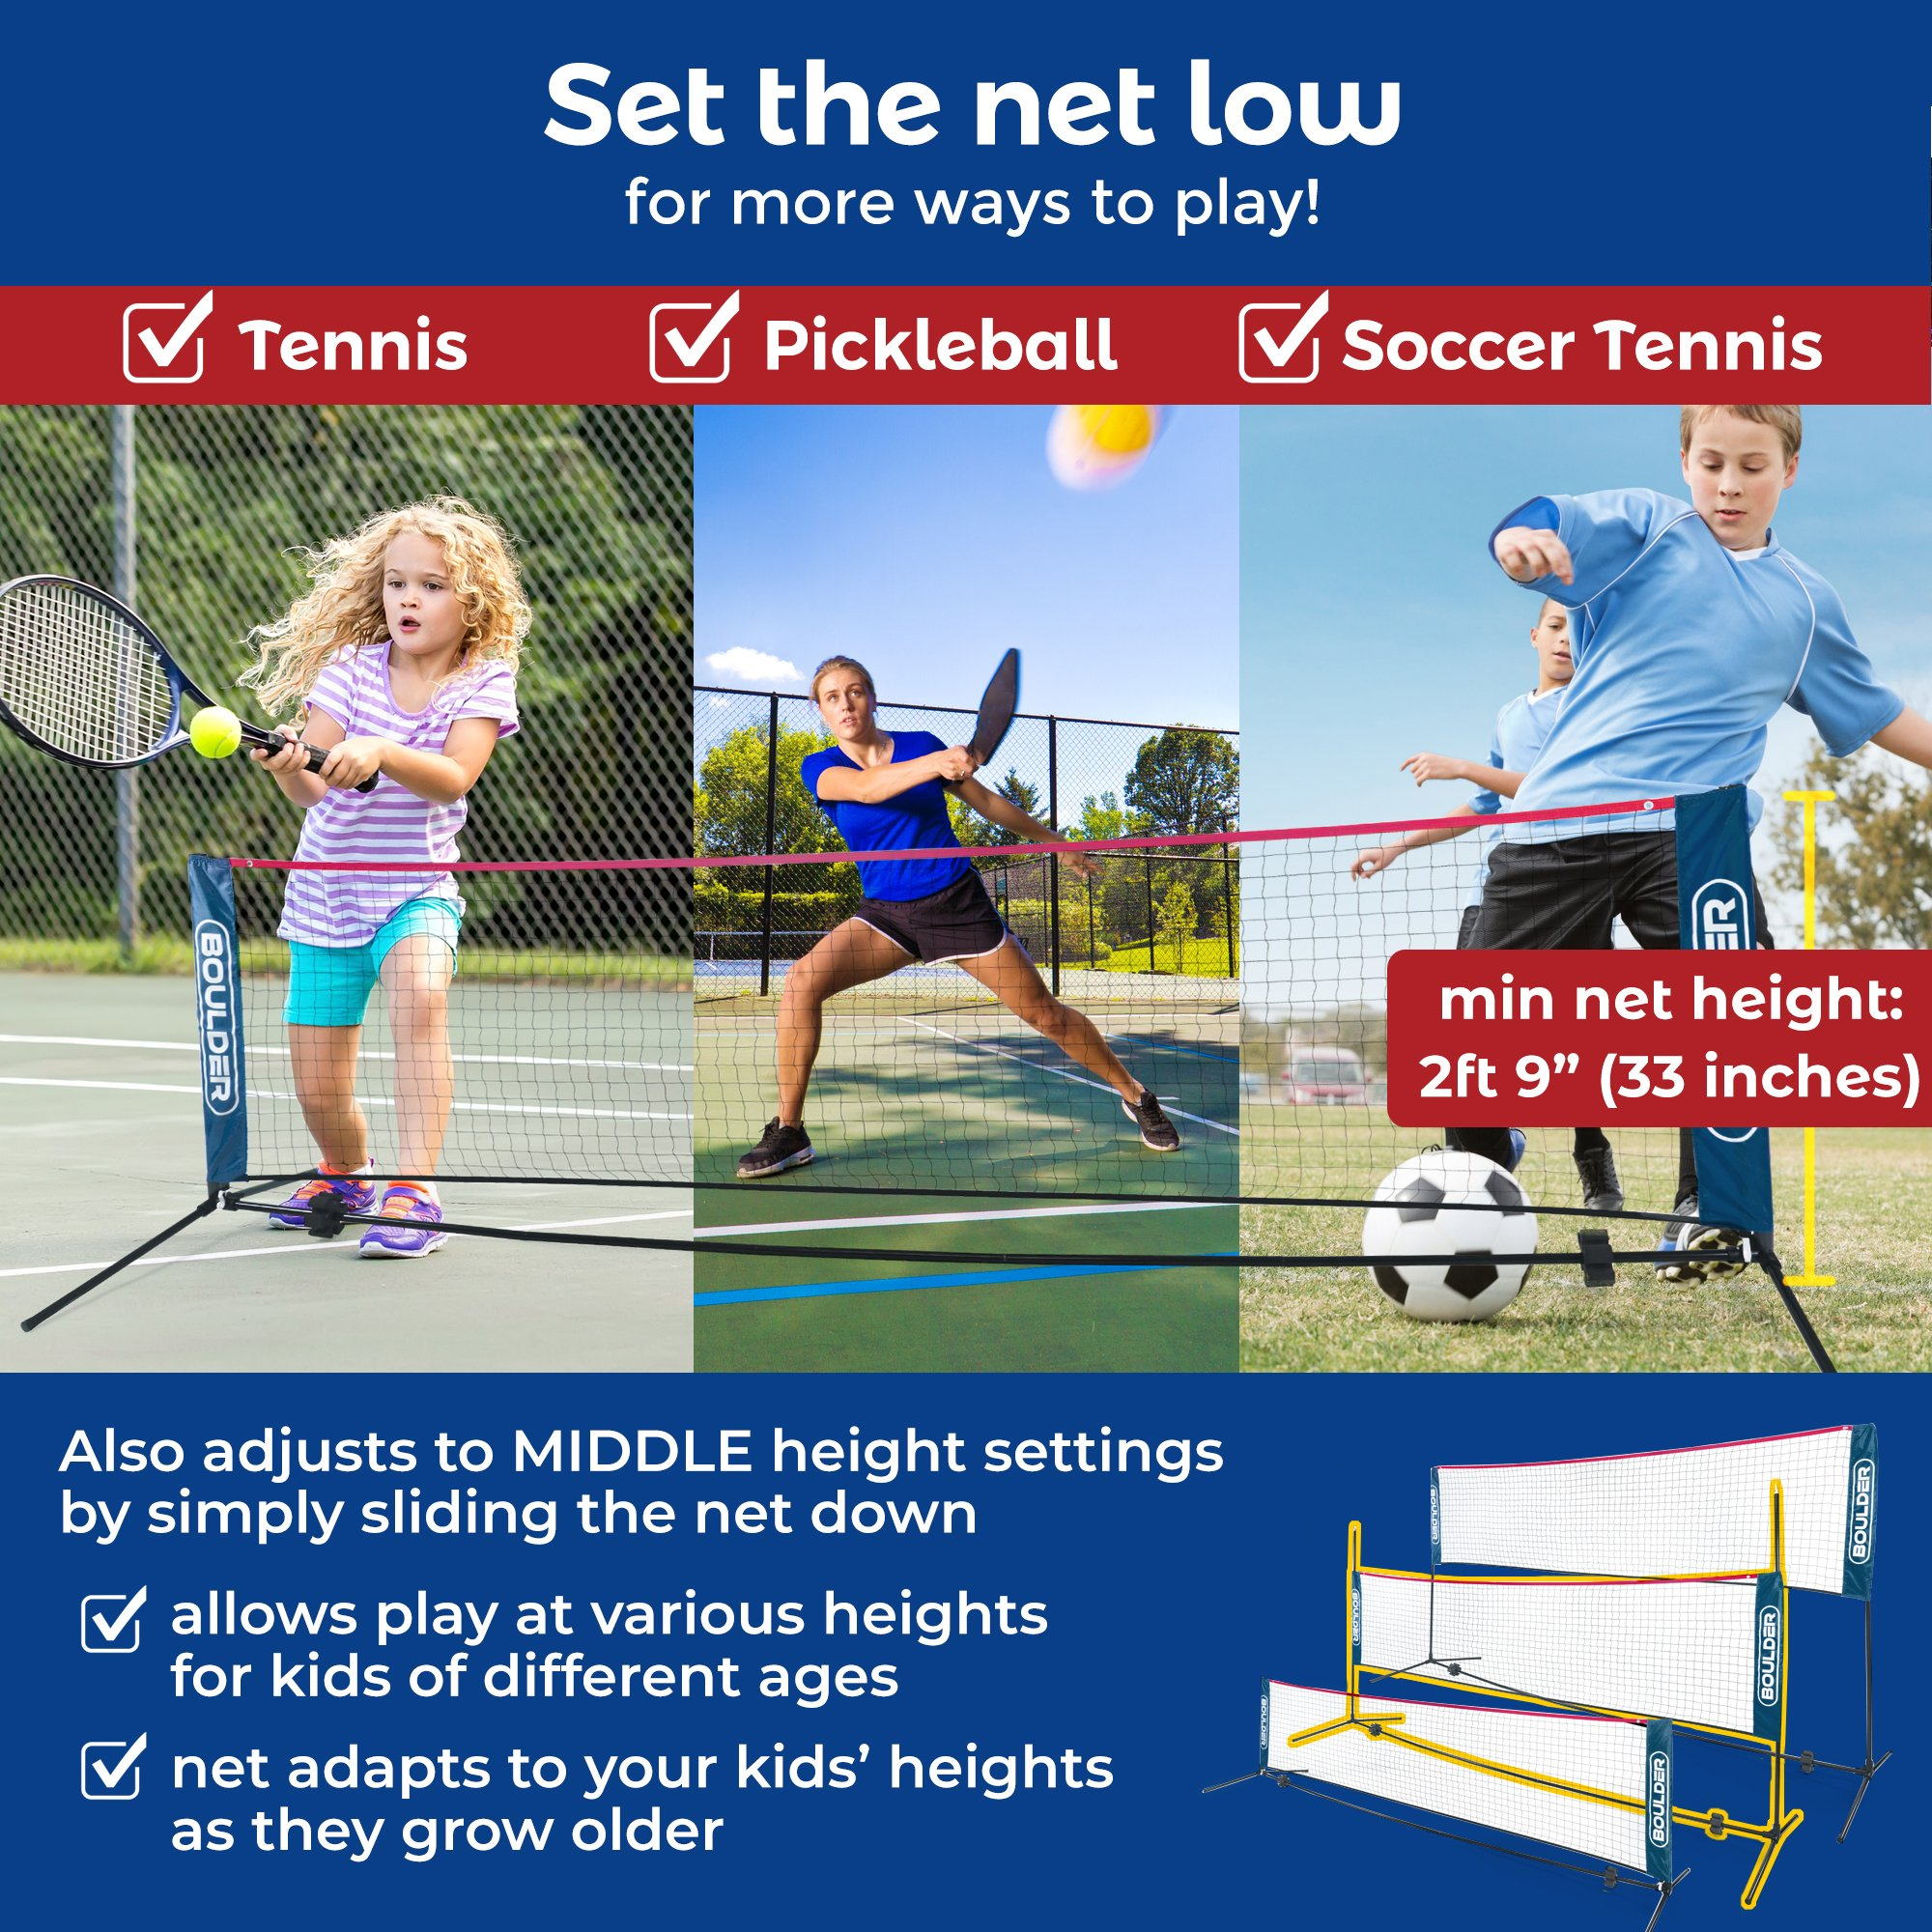 Boulder Portable Badminton Net Set - 10-Ft Net for Tennis, Soccer Tennis, Pickleball, Kids Volleyball - Easy Setup Nylon Sports Net with Poles - for Indoor or Outdoor Court, Beach, Driveway by Boulder (Image #2)